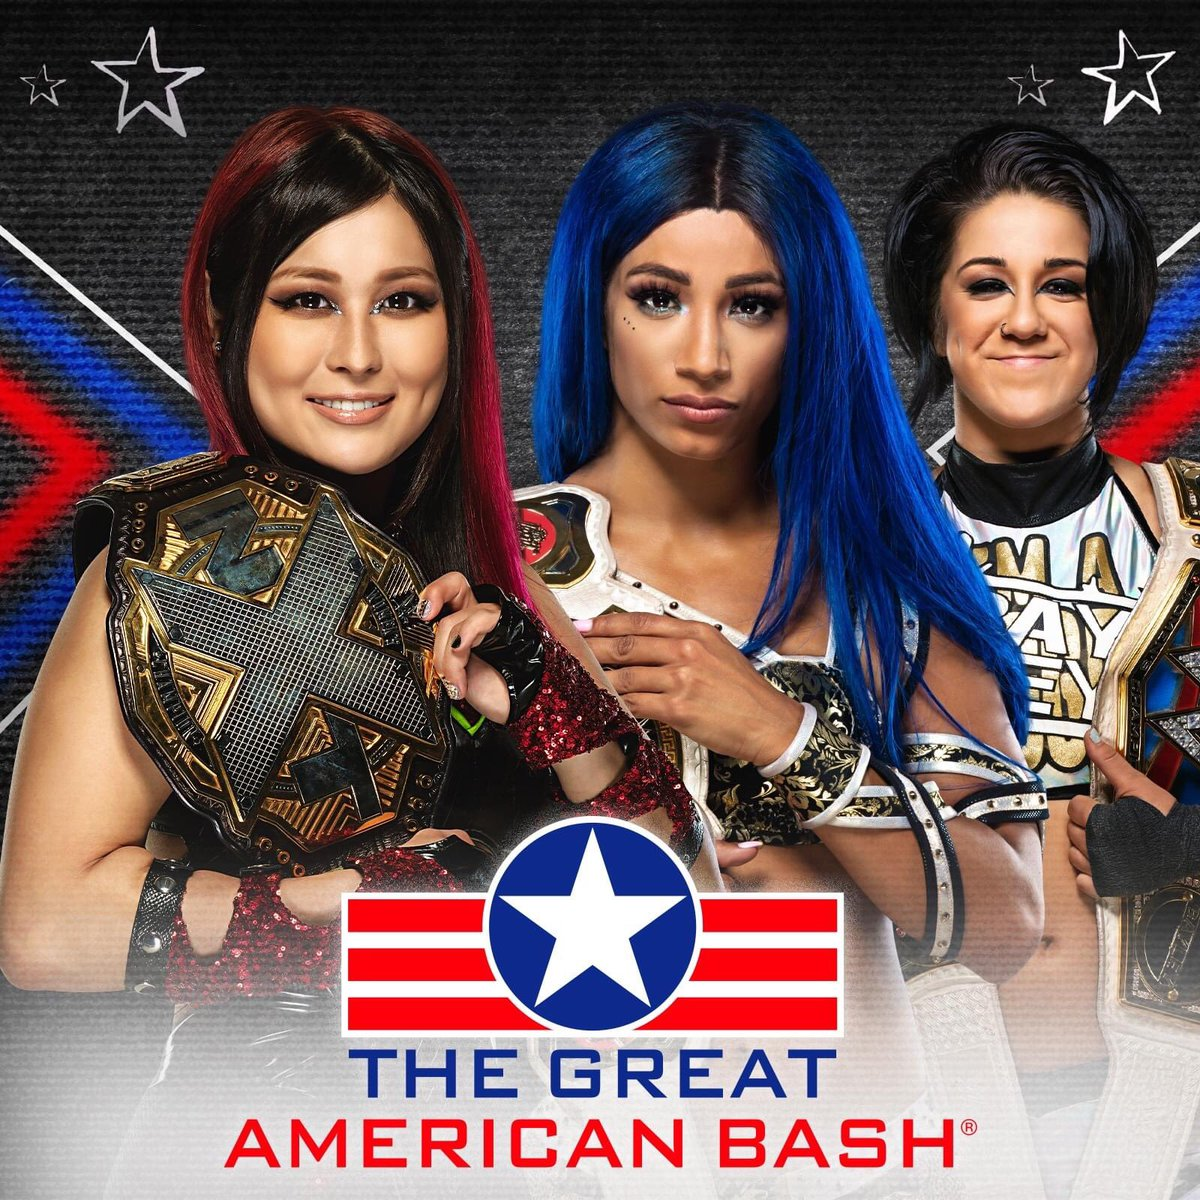 #NowWatching - NXT The Great American Bash (Night 1) #NXT #TheGreatAmericanBash #WWE #WWENXT #WWENetwork pic.twitter.com/GerSzLGiGL  by wrestling-infos.de